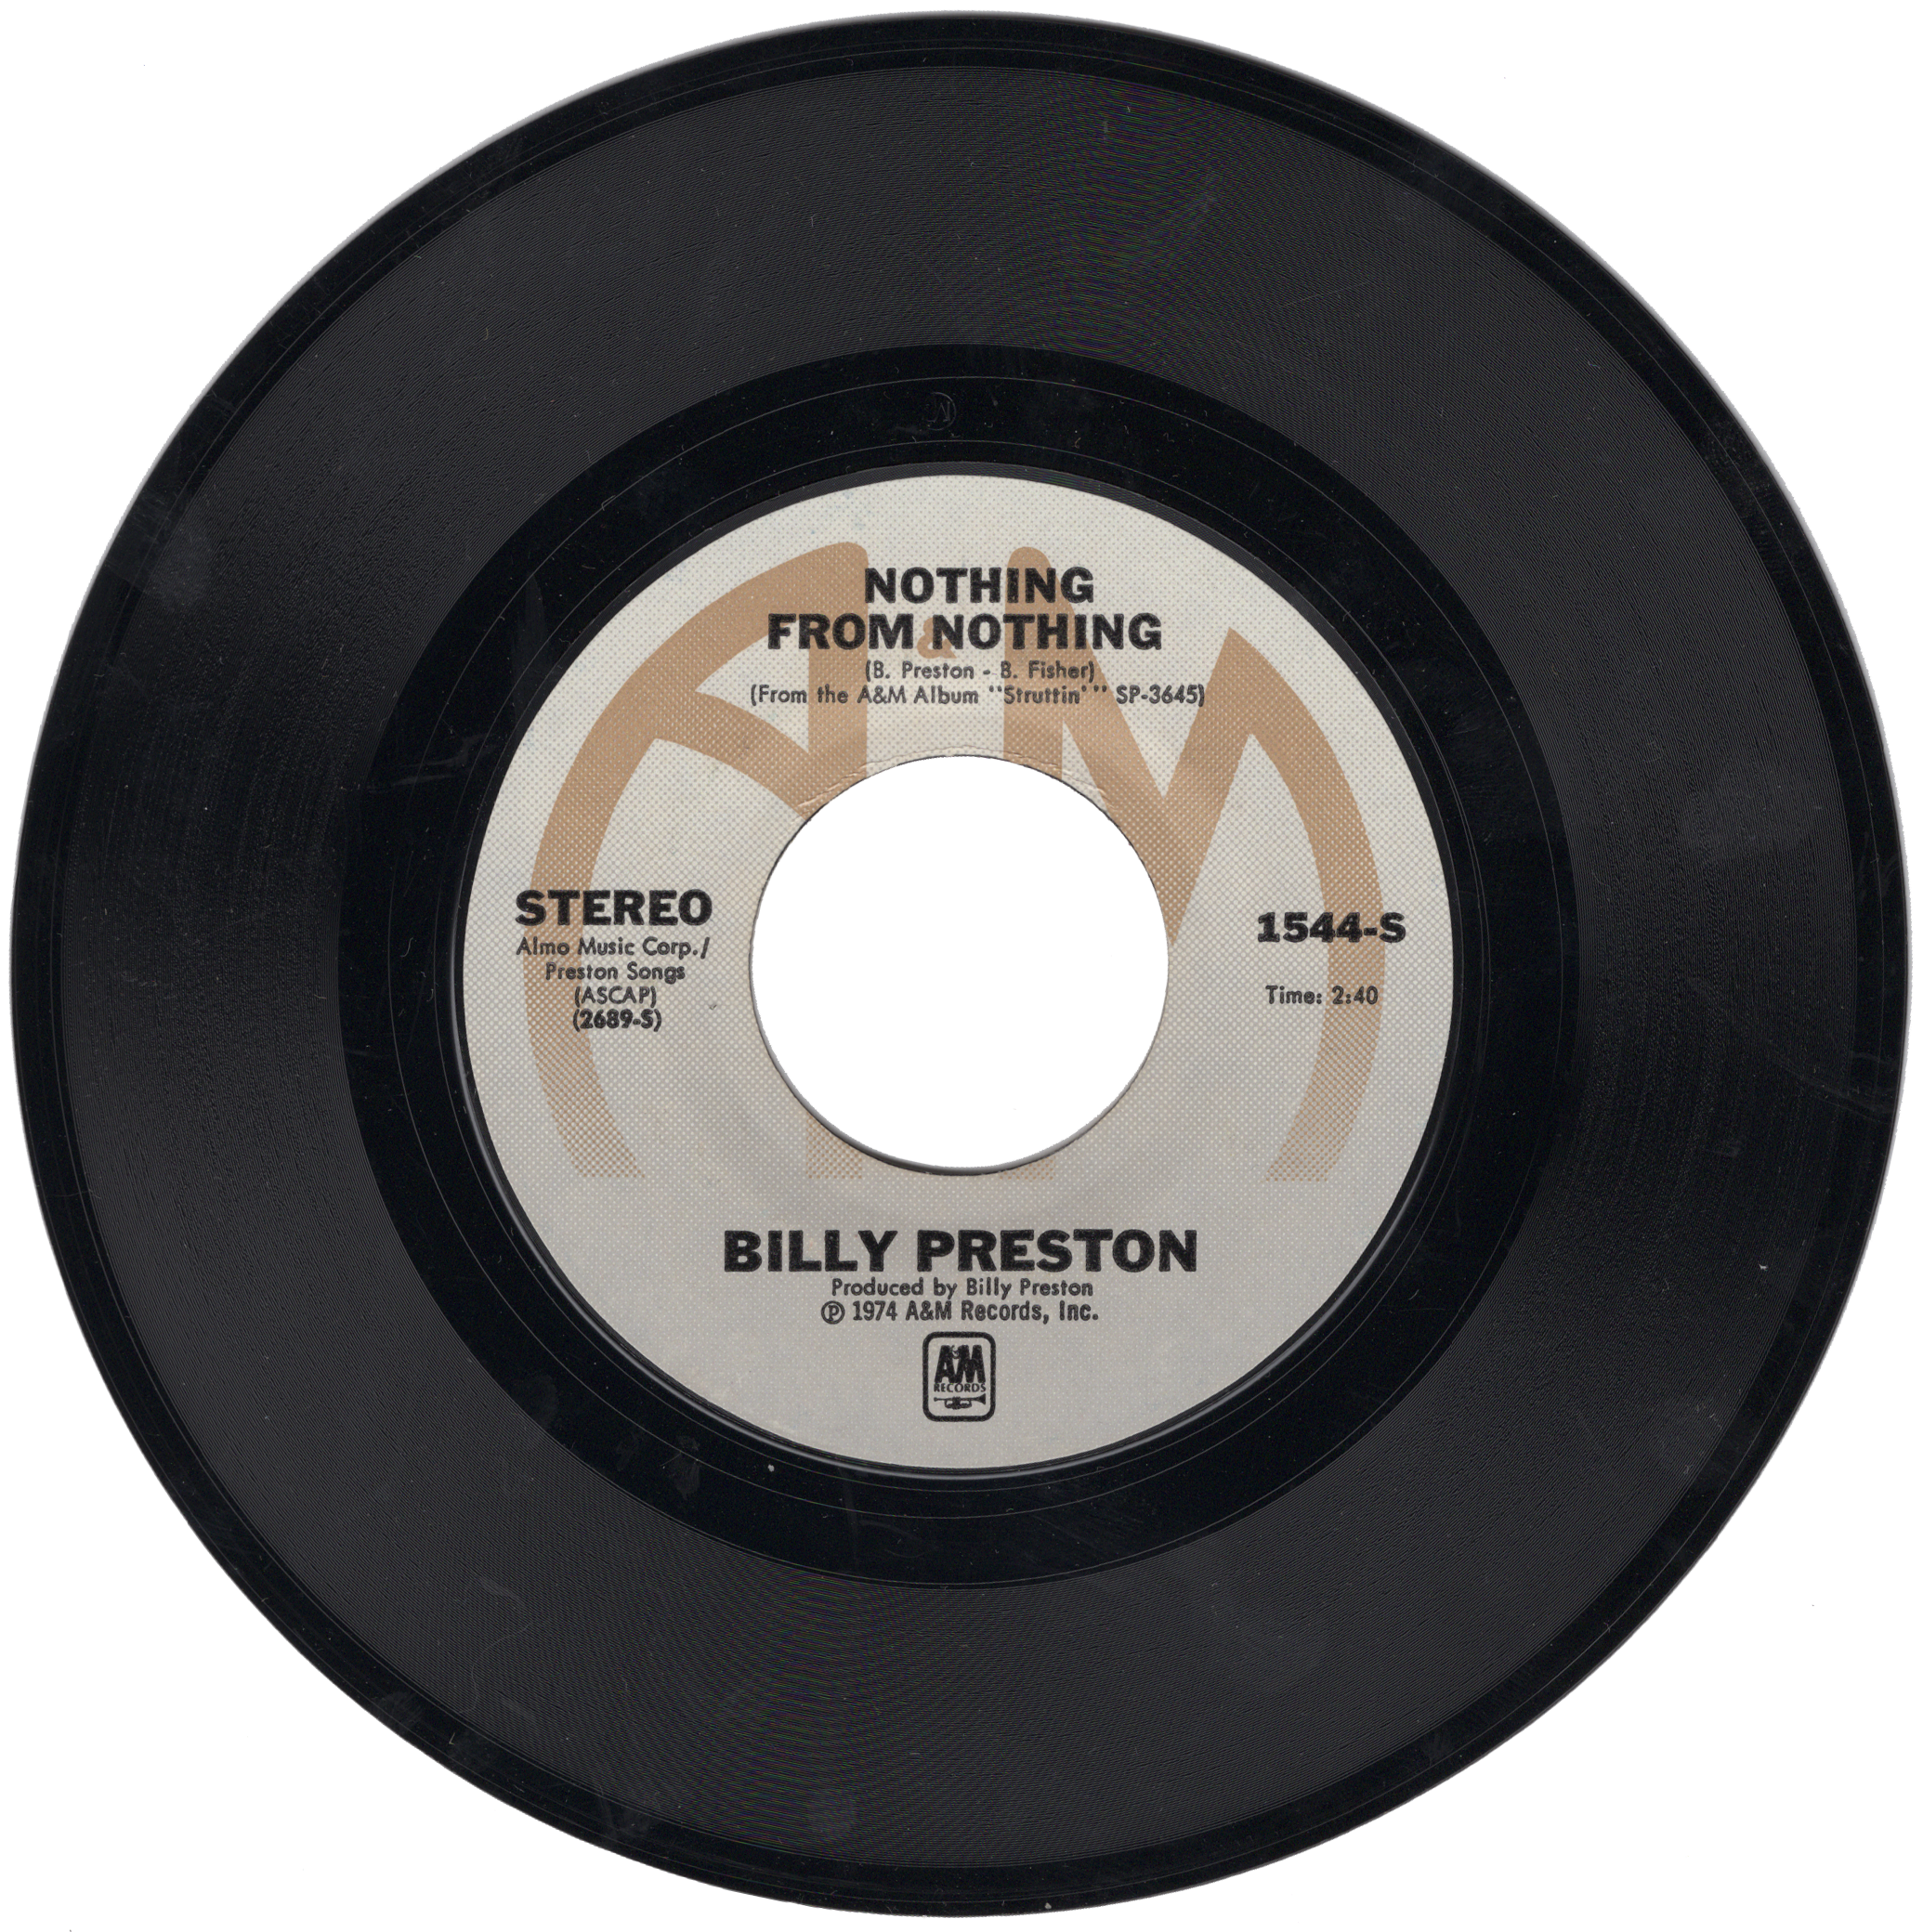 WLWLTDOO-1974-45-BILLY_PRESTON-NOTHING_FROM_NOTHING-FACE-1544S.png